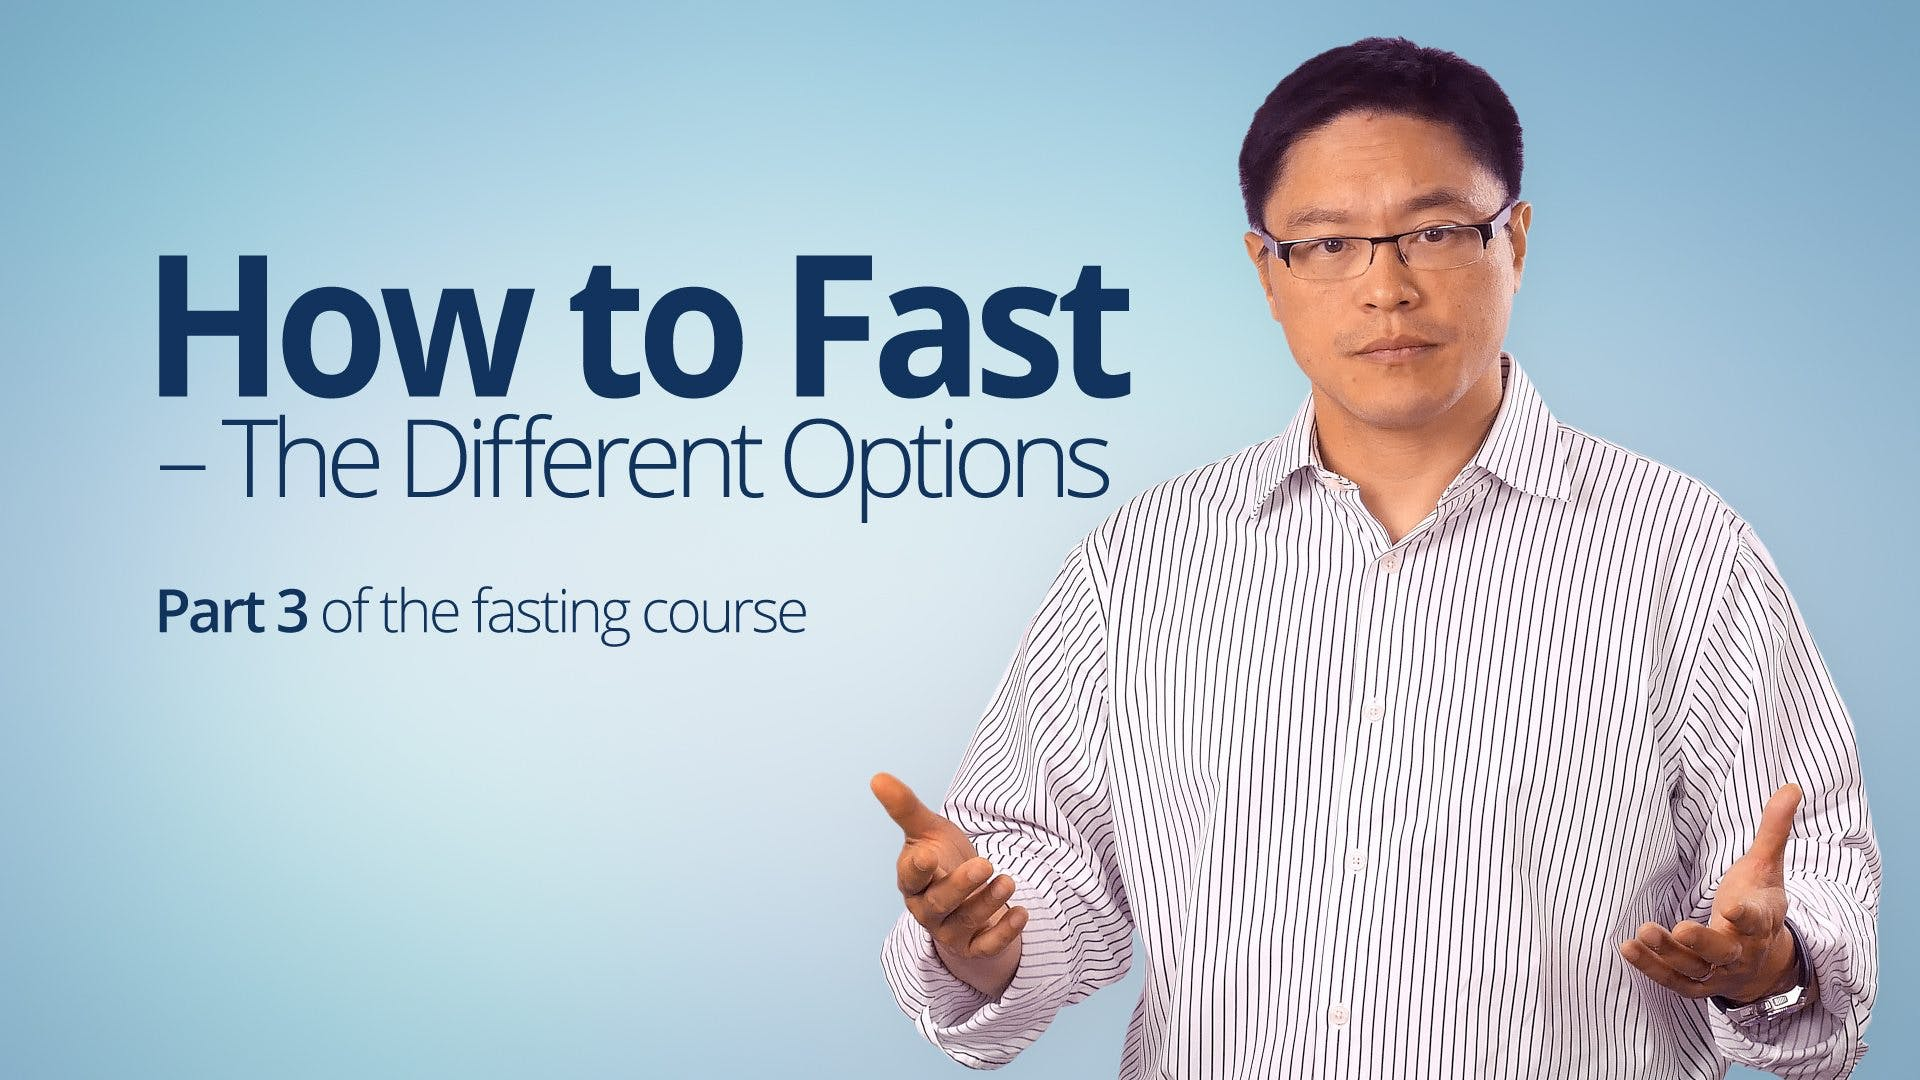 How to Fast - The Different Options